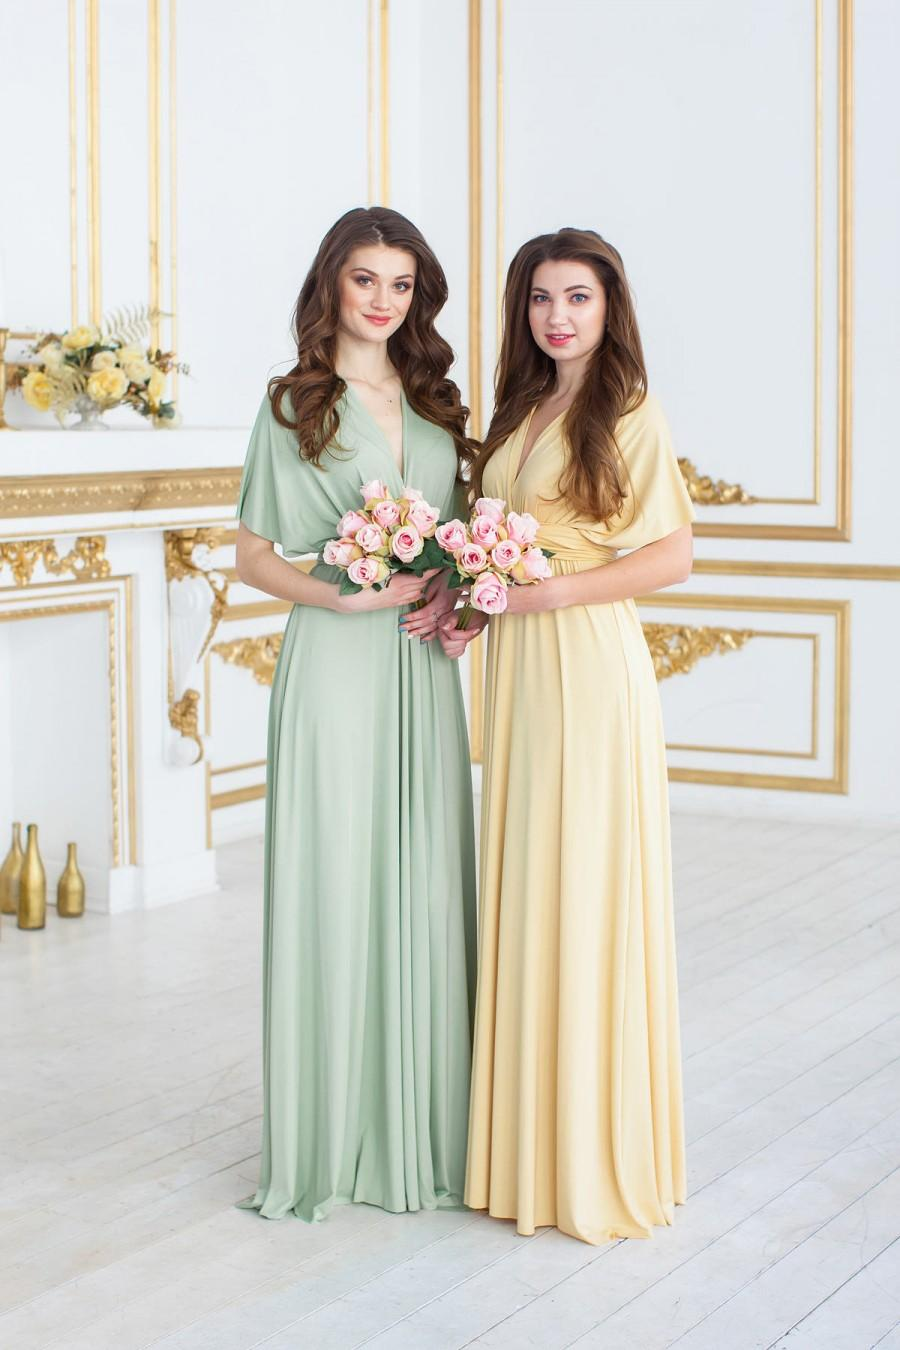 Mariage - Bridesmaid Dress Infinity Dusty Dress Convertible Dress Wrap Dress  Prom Dress Multiway Dress Champagne Party Dress Ship from New York